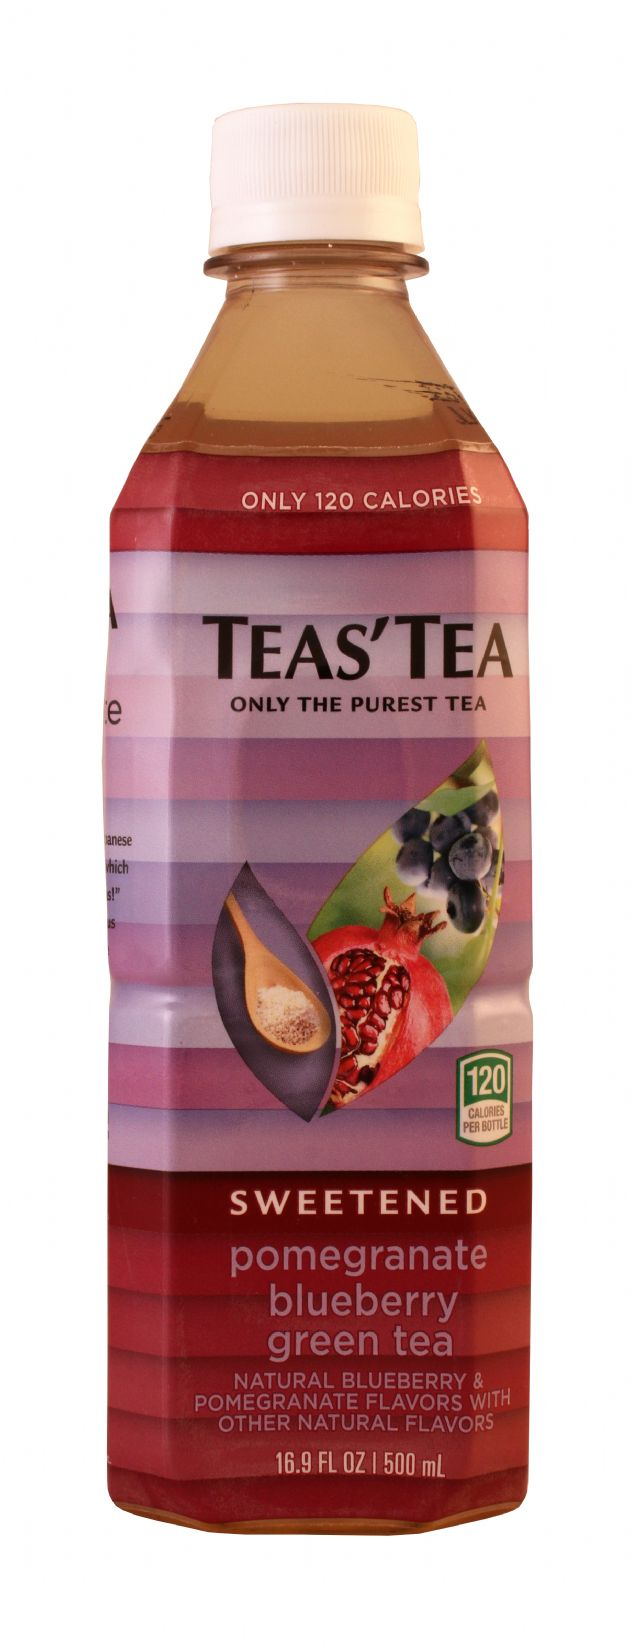 Teas' Tea: TeasTea PomBlue Front